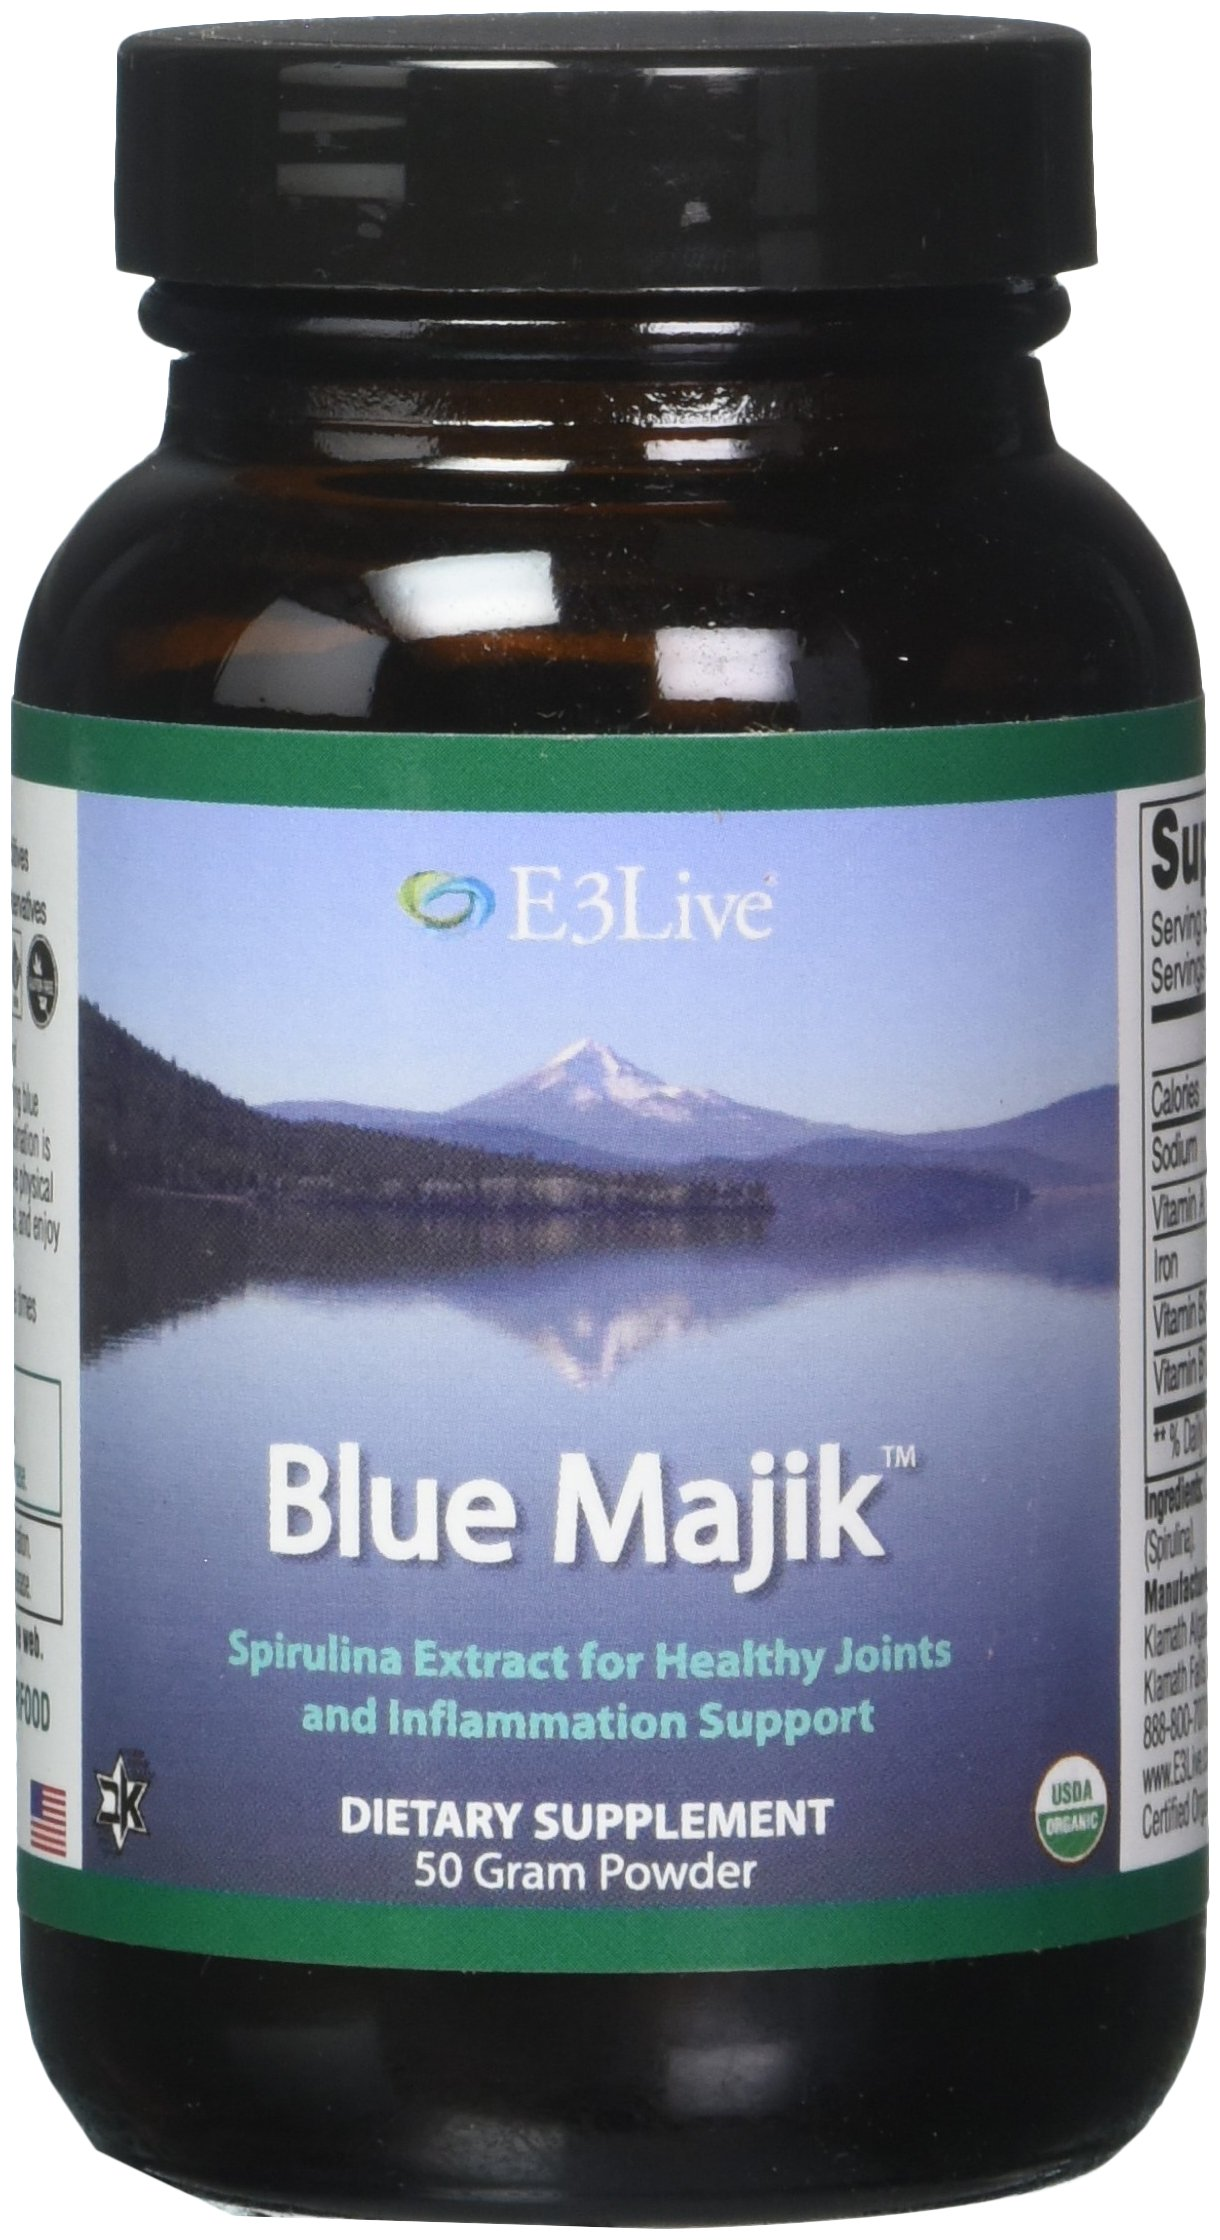 E3Live Blue Majik Fine Powder, 50 Gram by E3LIVE